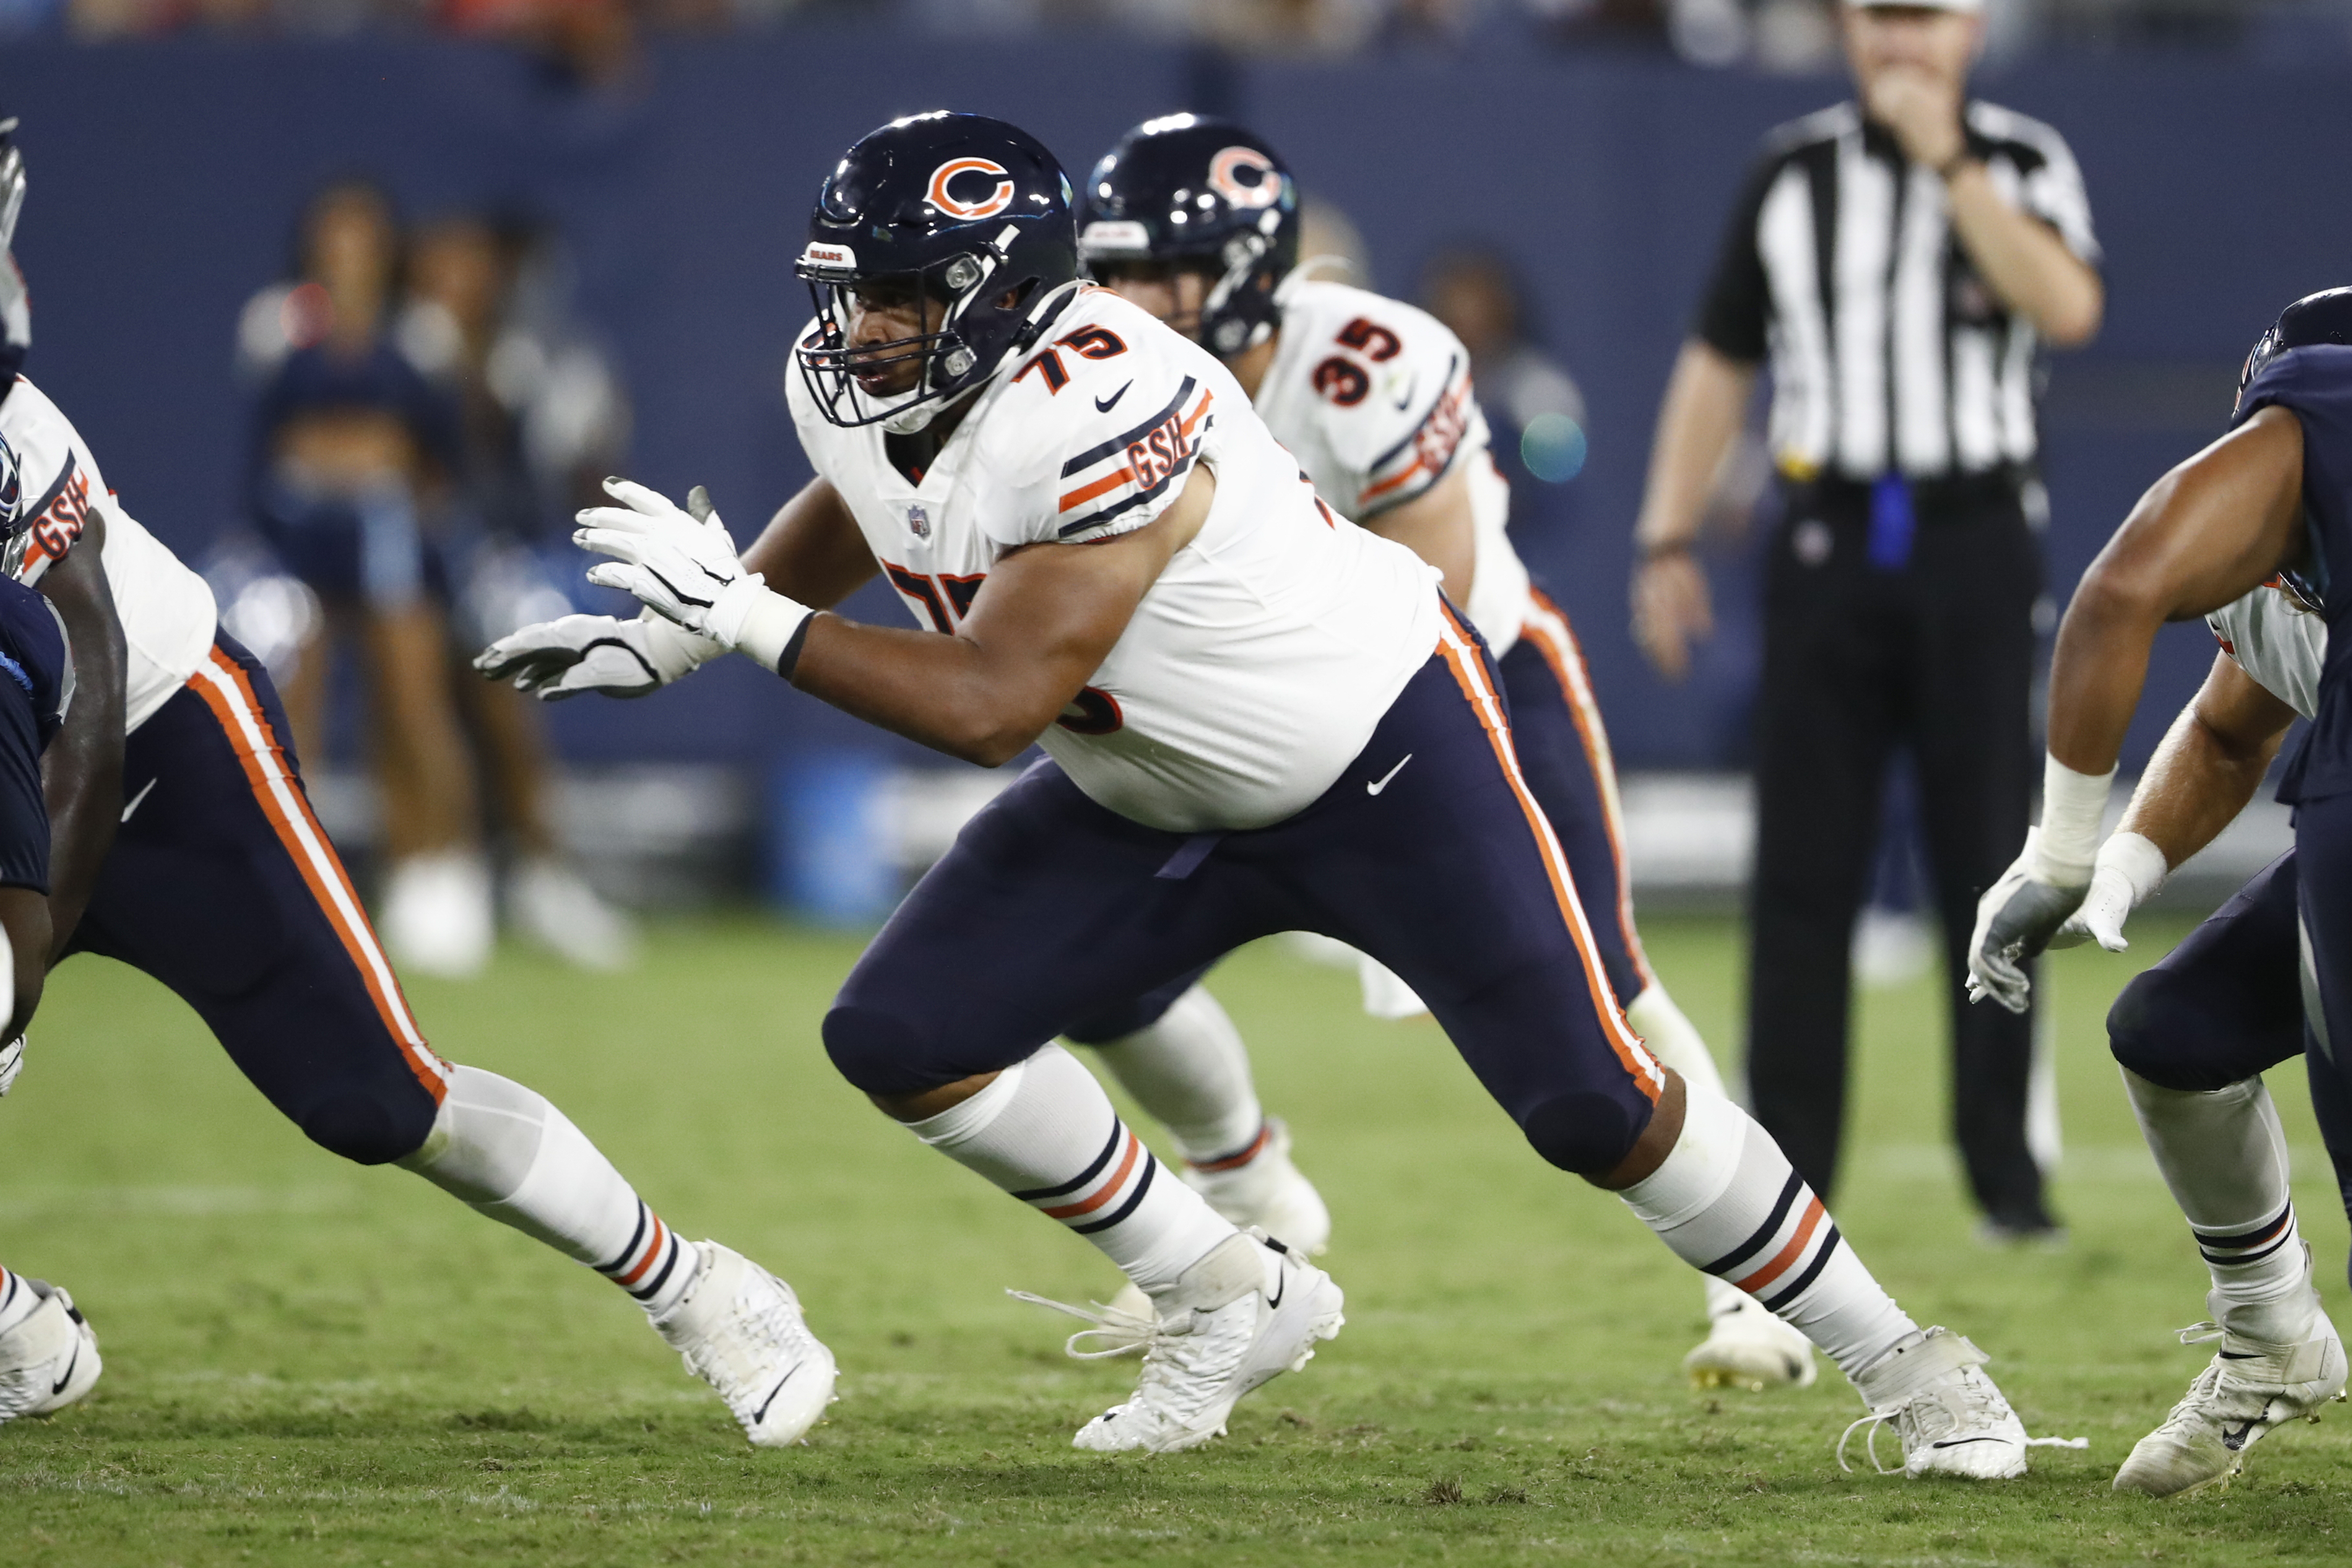 Rookie offensive lineman Larry Borom (75) played 15 snaps in the Bears' season opener against the Rams as a replacement for Jason Peters before suffering an ankle injury.